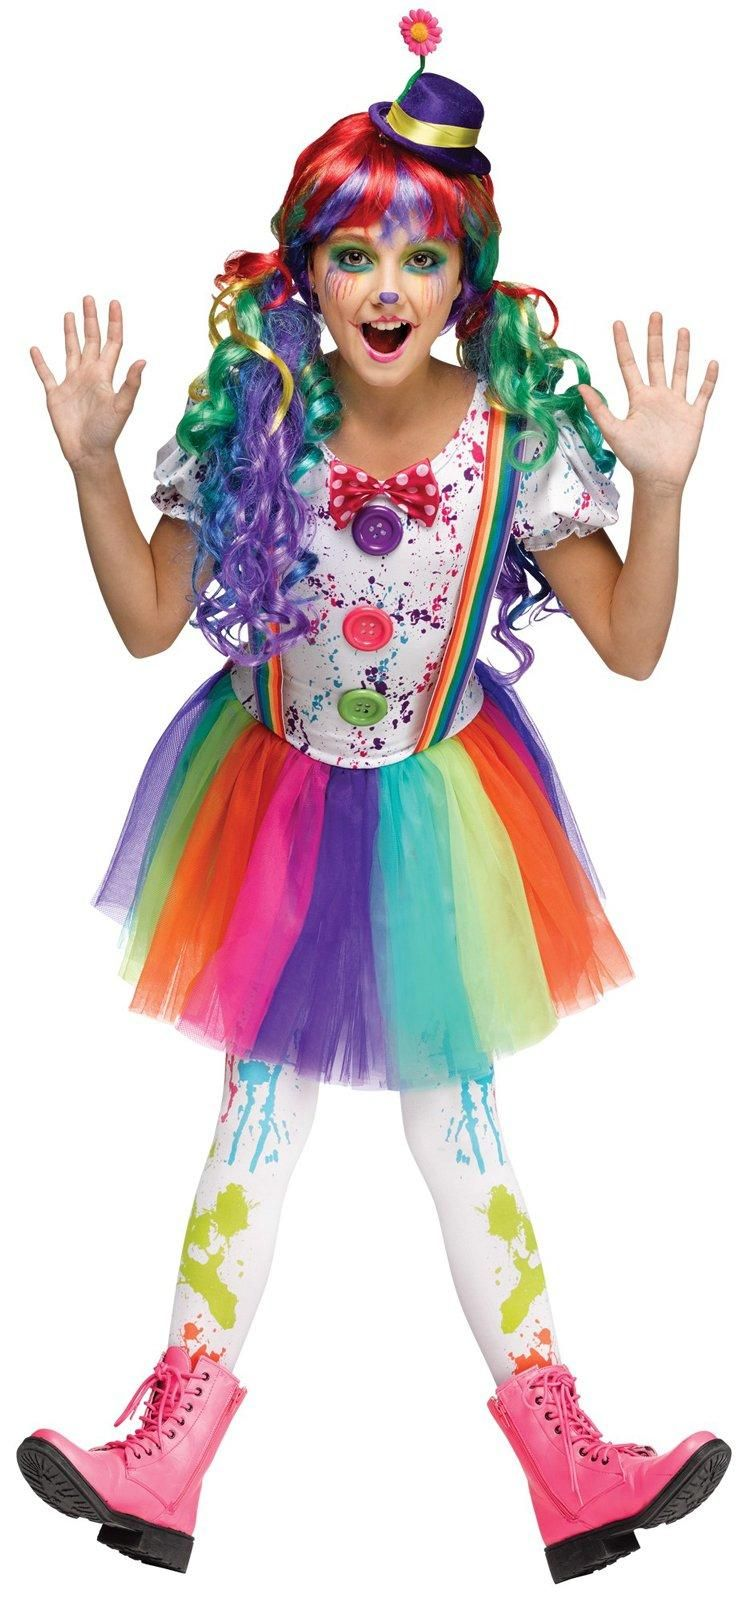 Kids Crazy Color Clown Costume | Costumes, Halloween costumes and ...